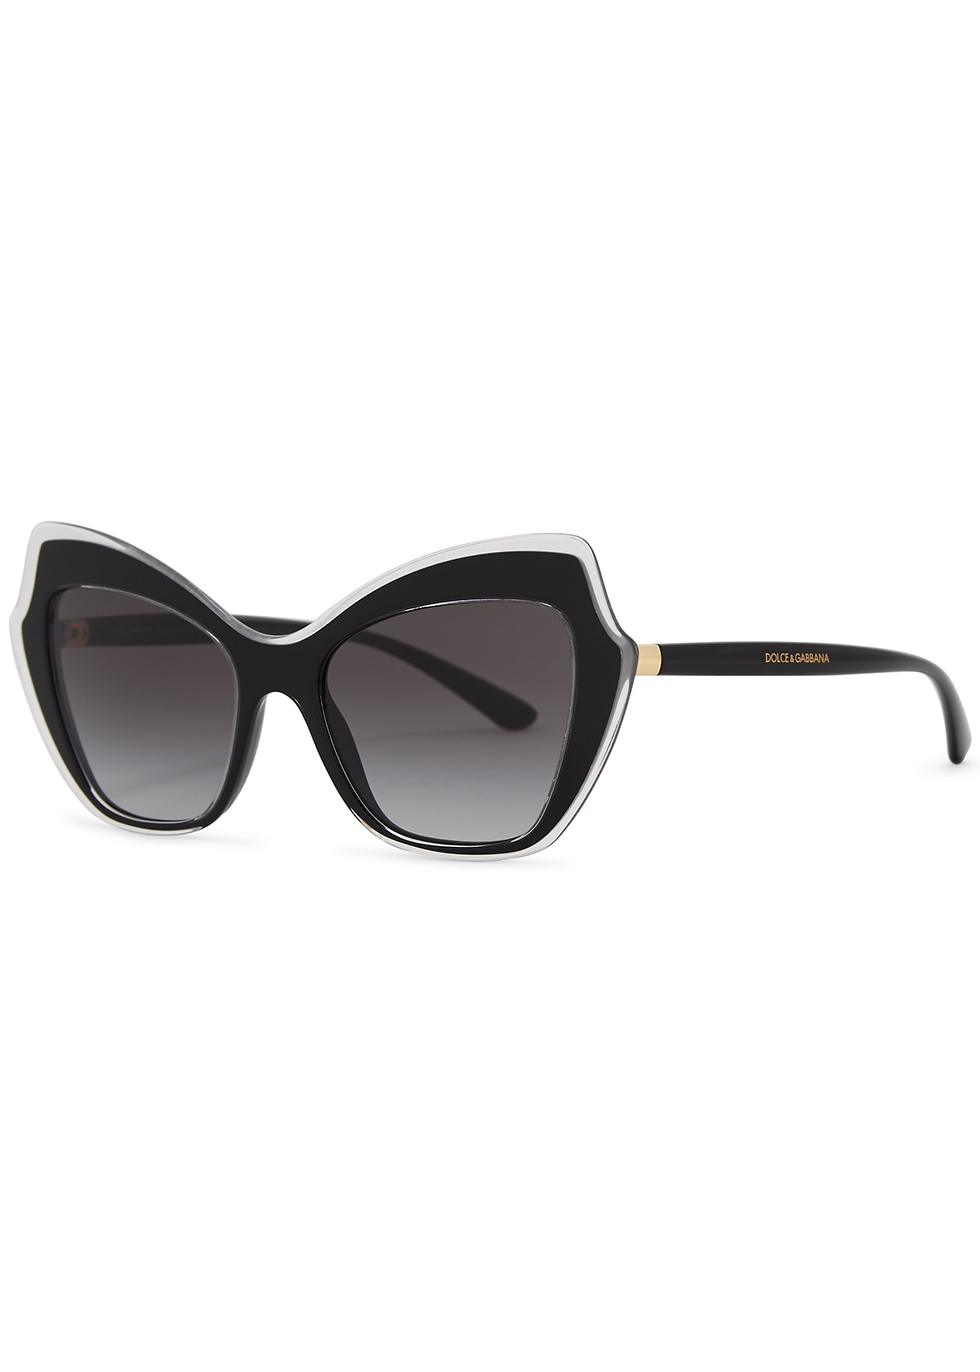 Black oversized cat-eye sunglasses - Dolce & Gabbana